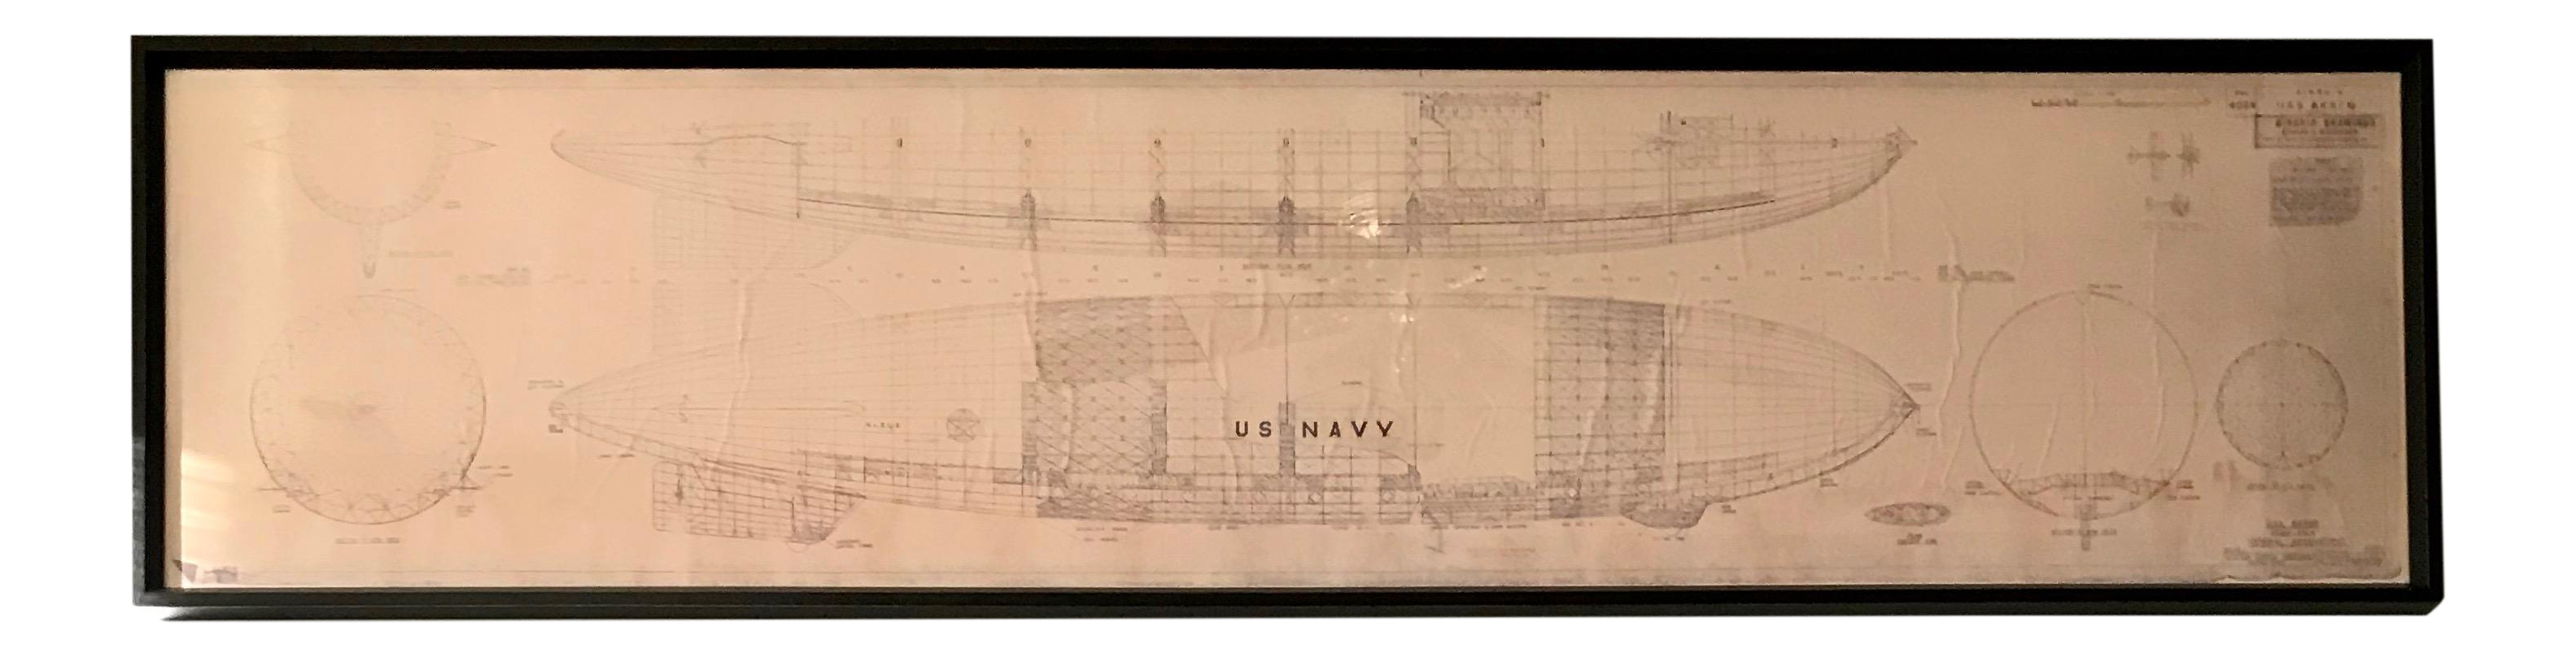 Zeppelin drawing airship. Vintage u s navy